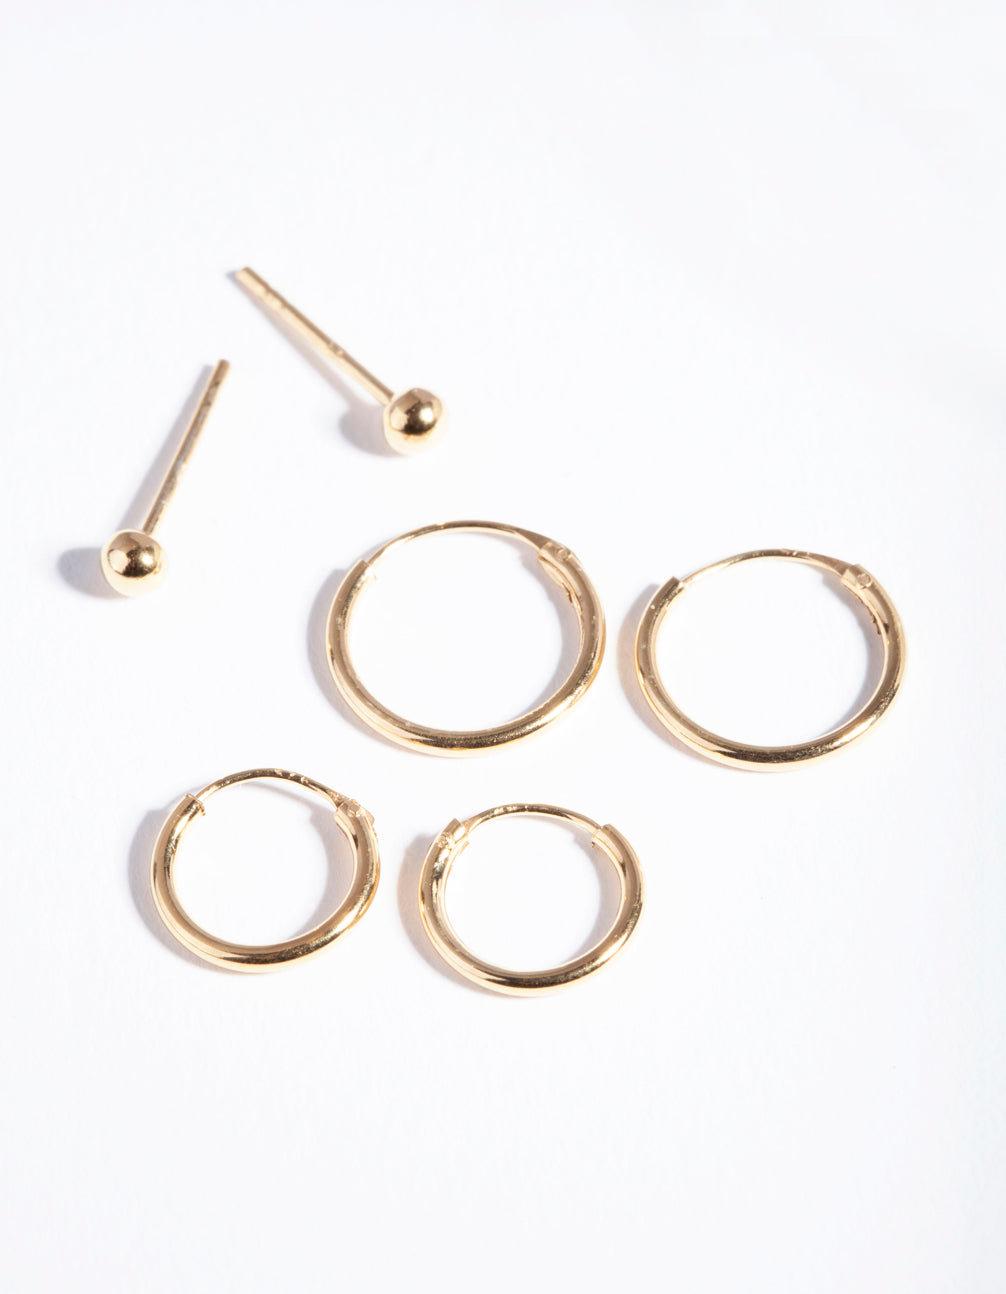 Gold Plated Sterling Silver Stud and Hoop 3-Pack Earring